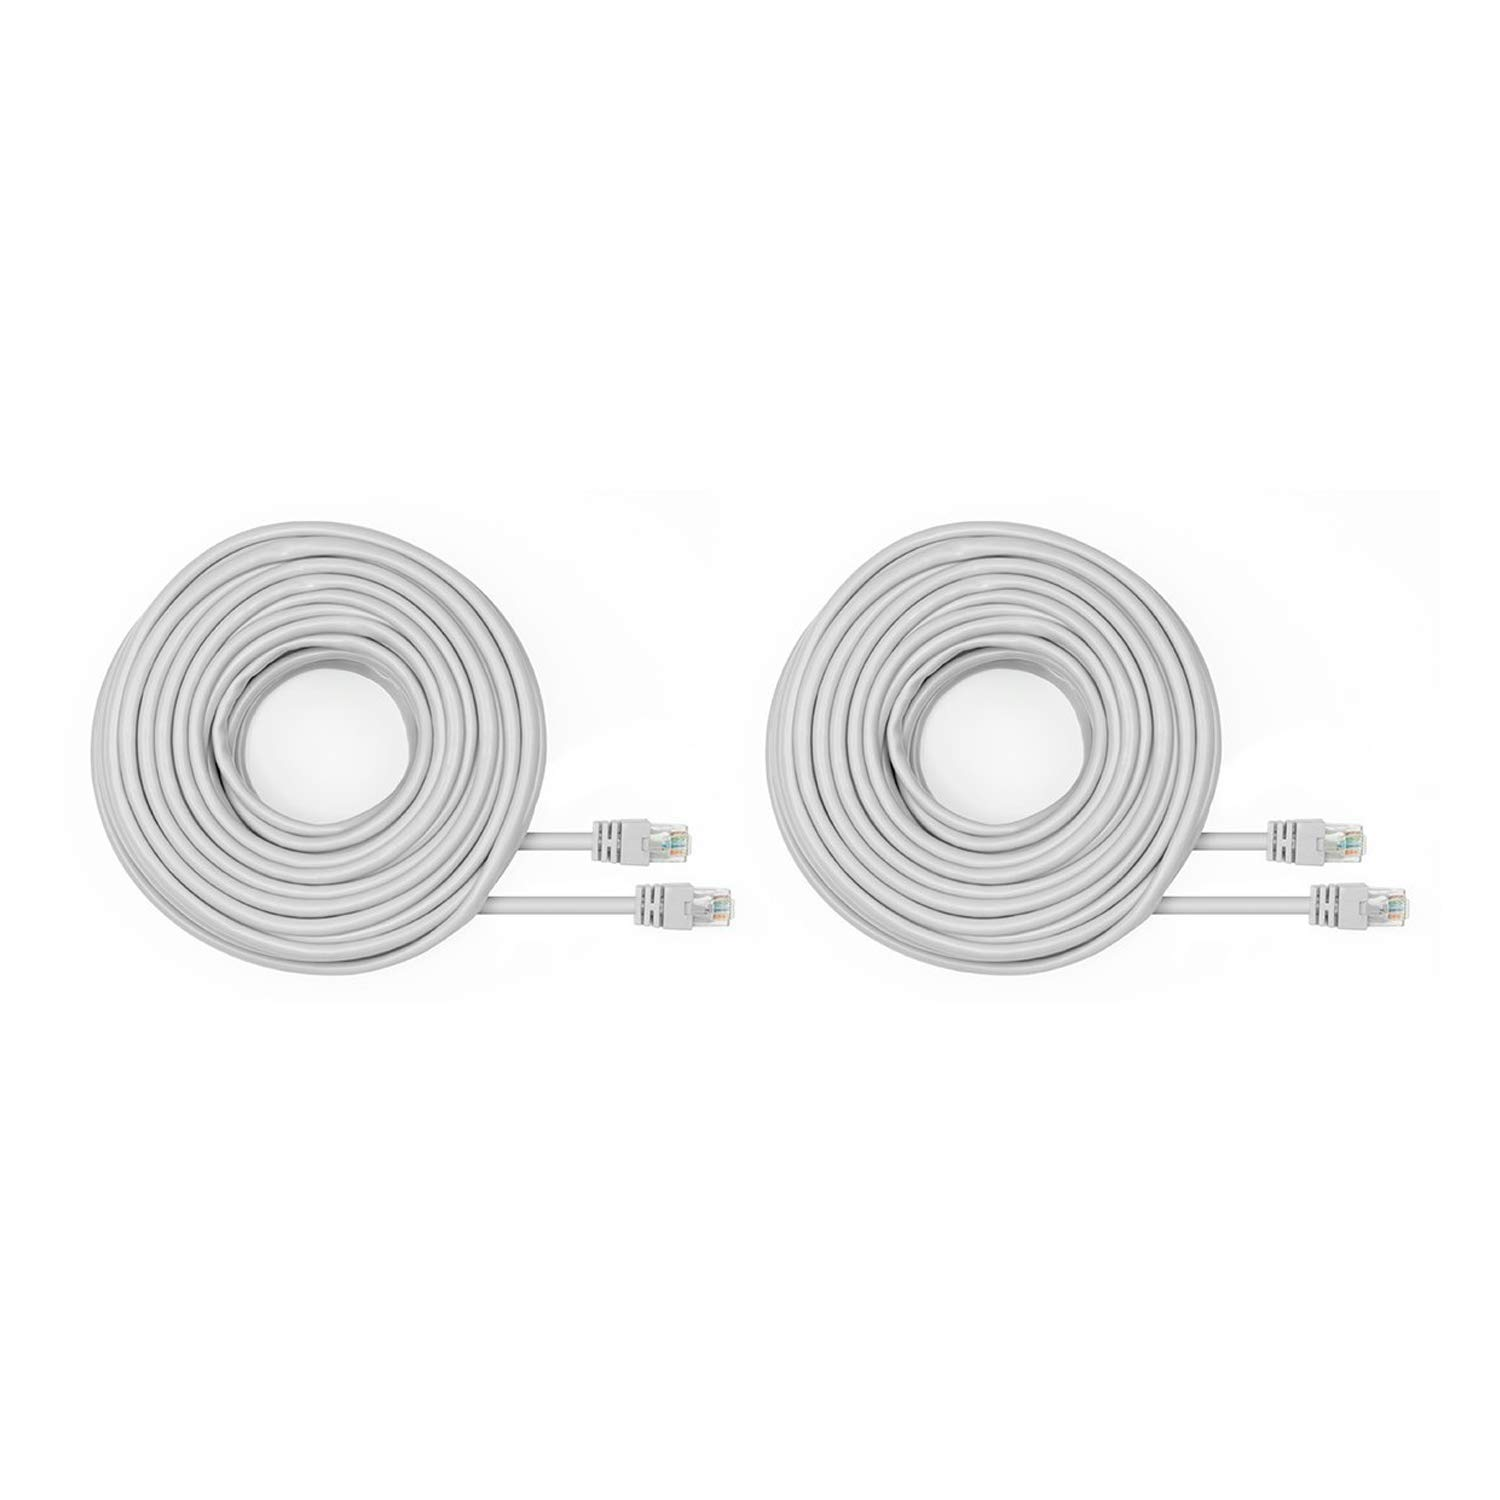 Amcrest Cat5e 100ft Ethernet Cable Internet High Speed Network Cable for POE Security Cameras, Smart TV, PS4, Xbox One, Router, Laptop, Computer, Home, 2-Pack (2PACK-CAT5ECABLE100)